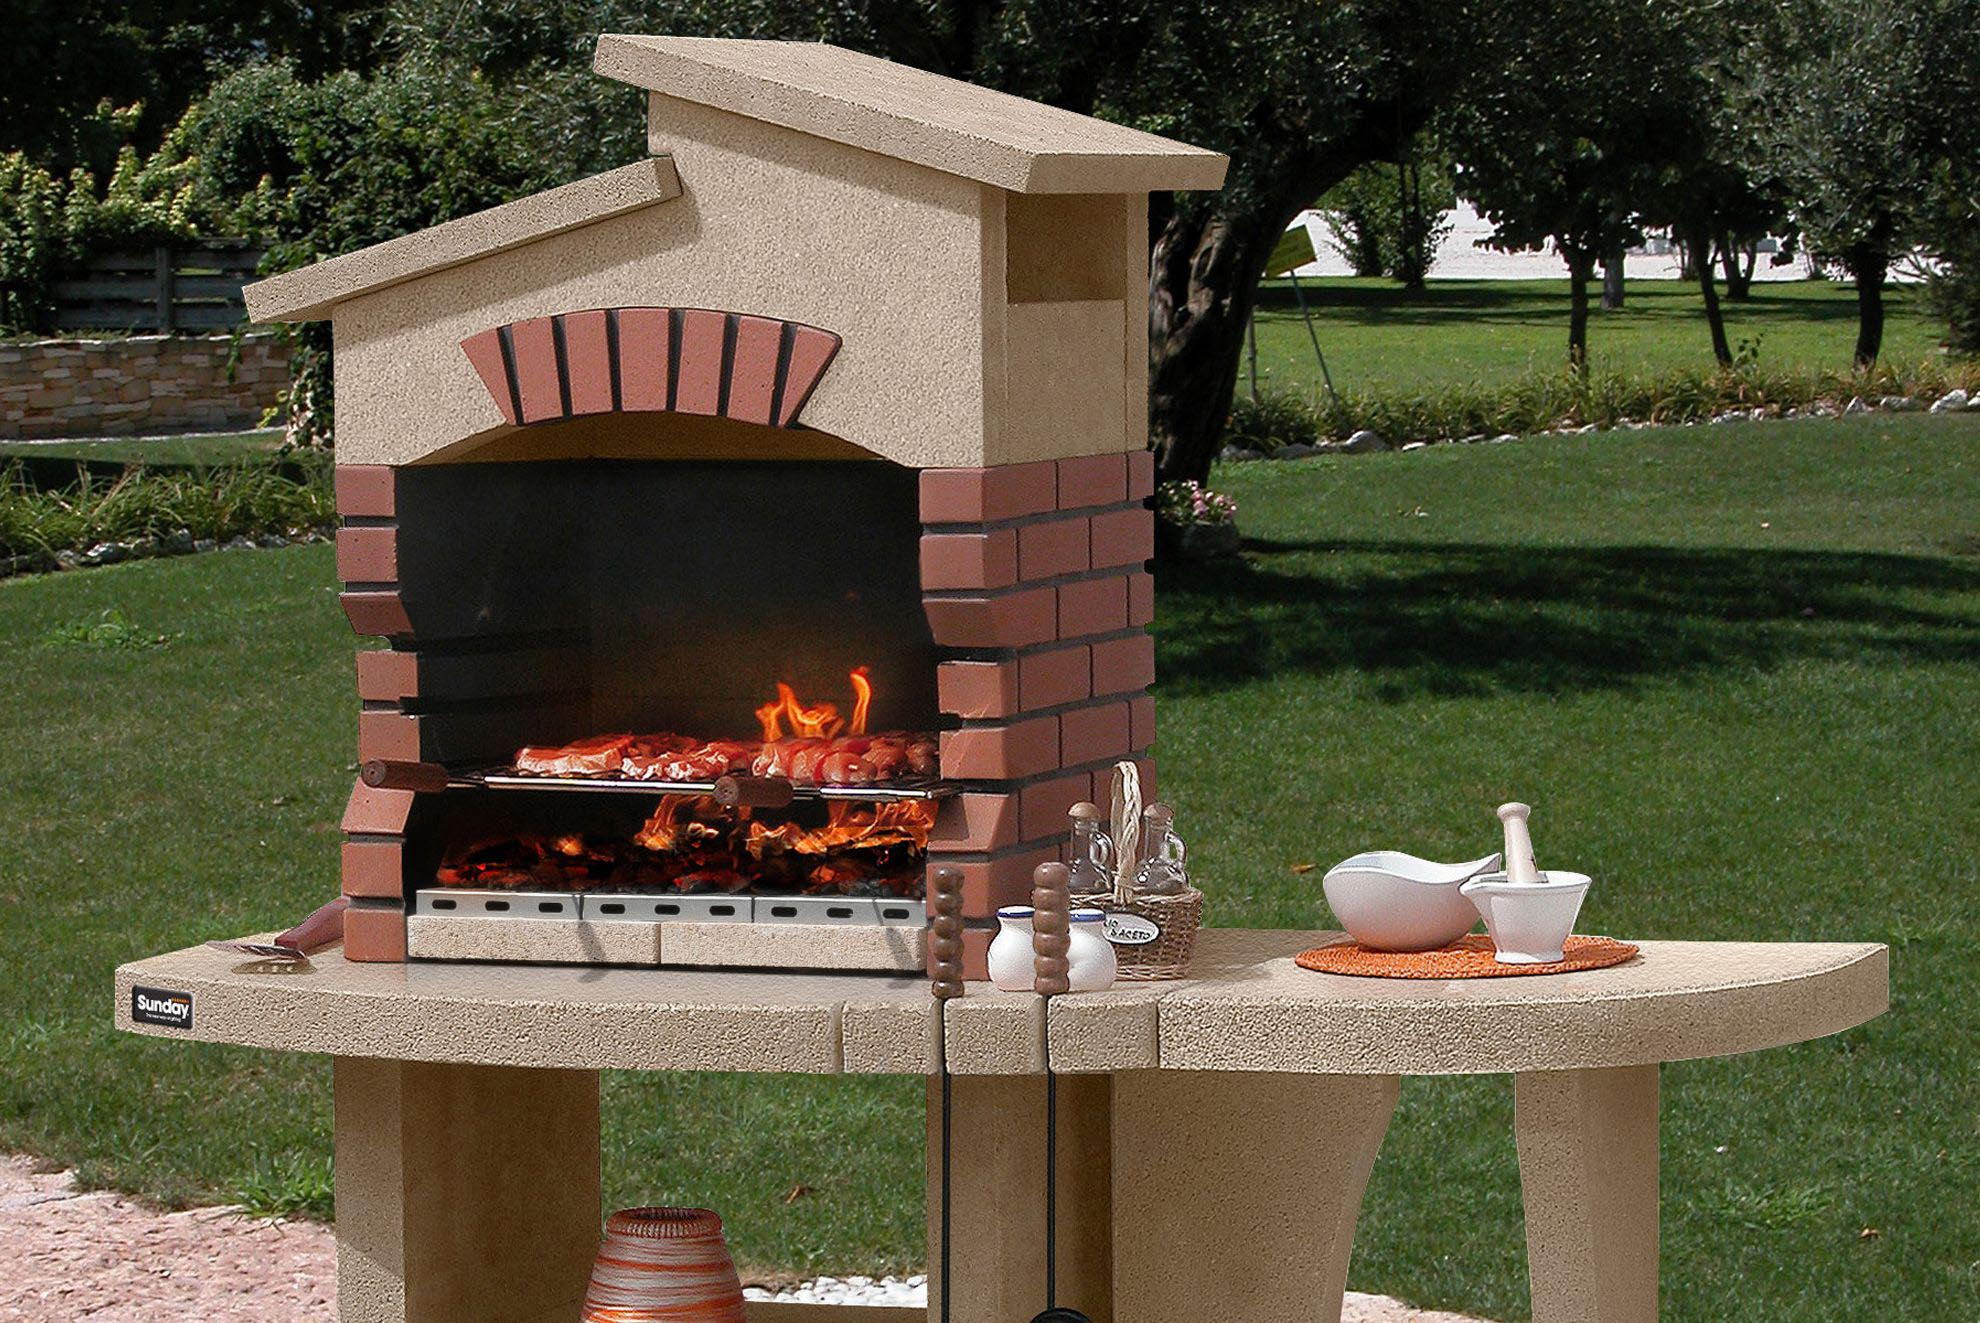 Create brick bbq plans before building barbeque or grill for Fireplace and bbq